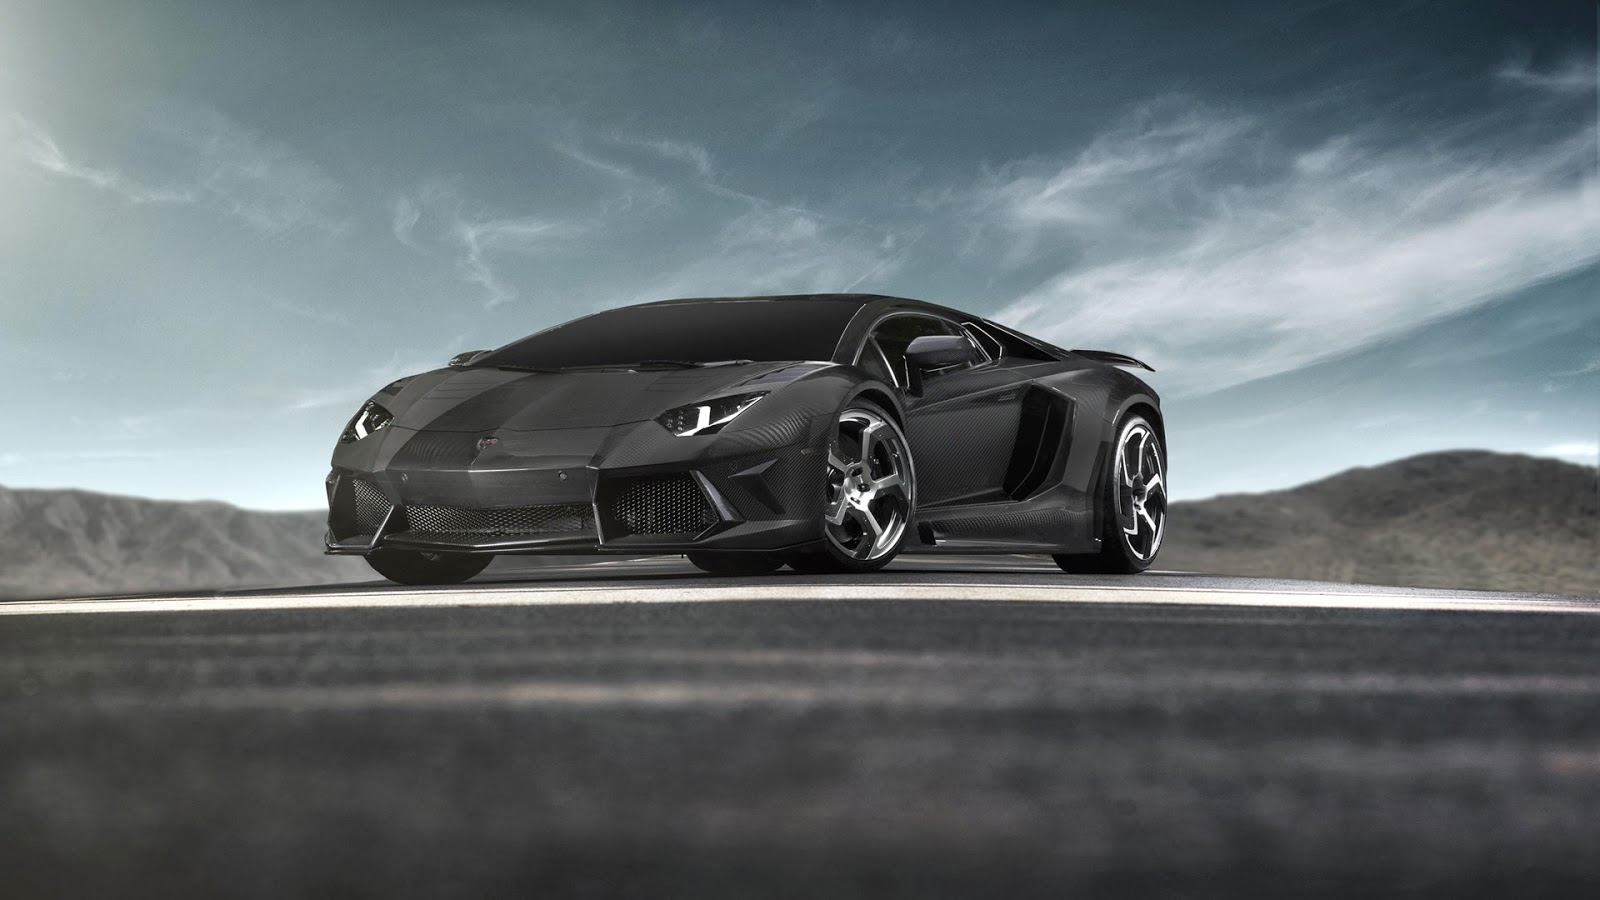 Lamborghini beautiful car wide wallpapers cars wallpaper publicscrutiny Gallery